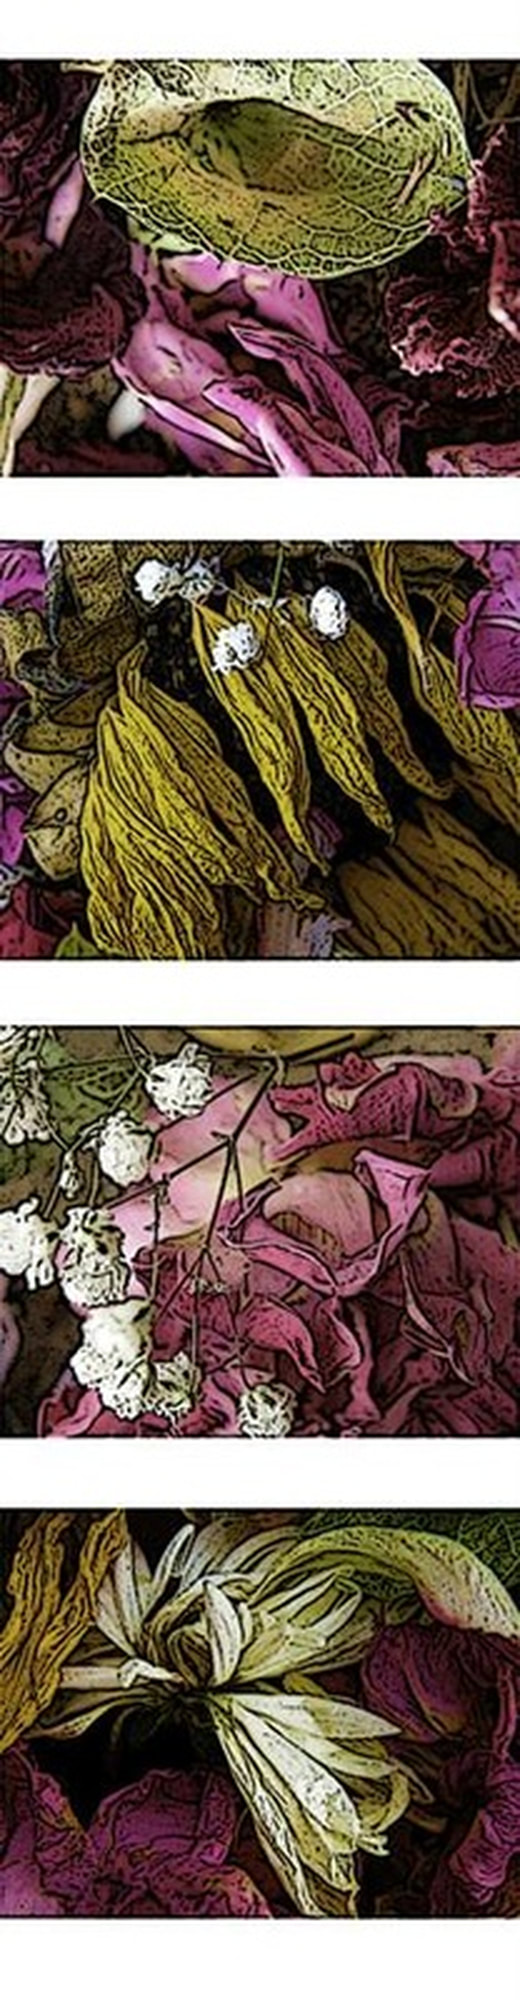 series of dried flower images